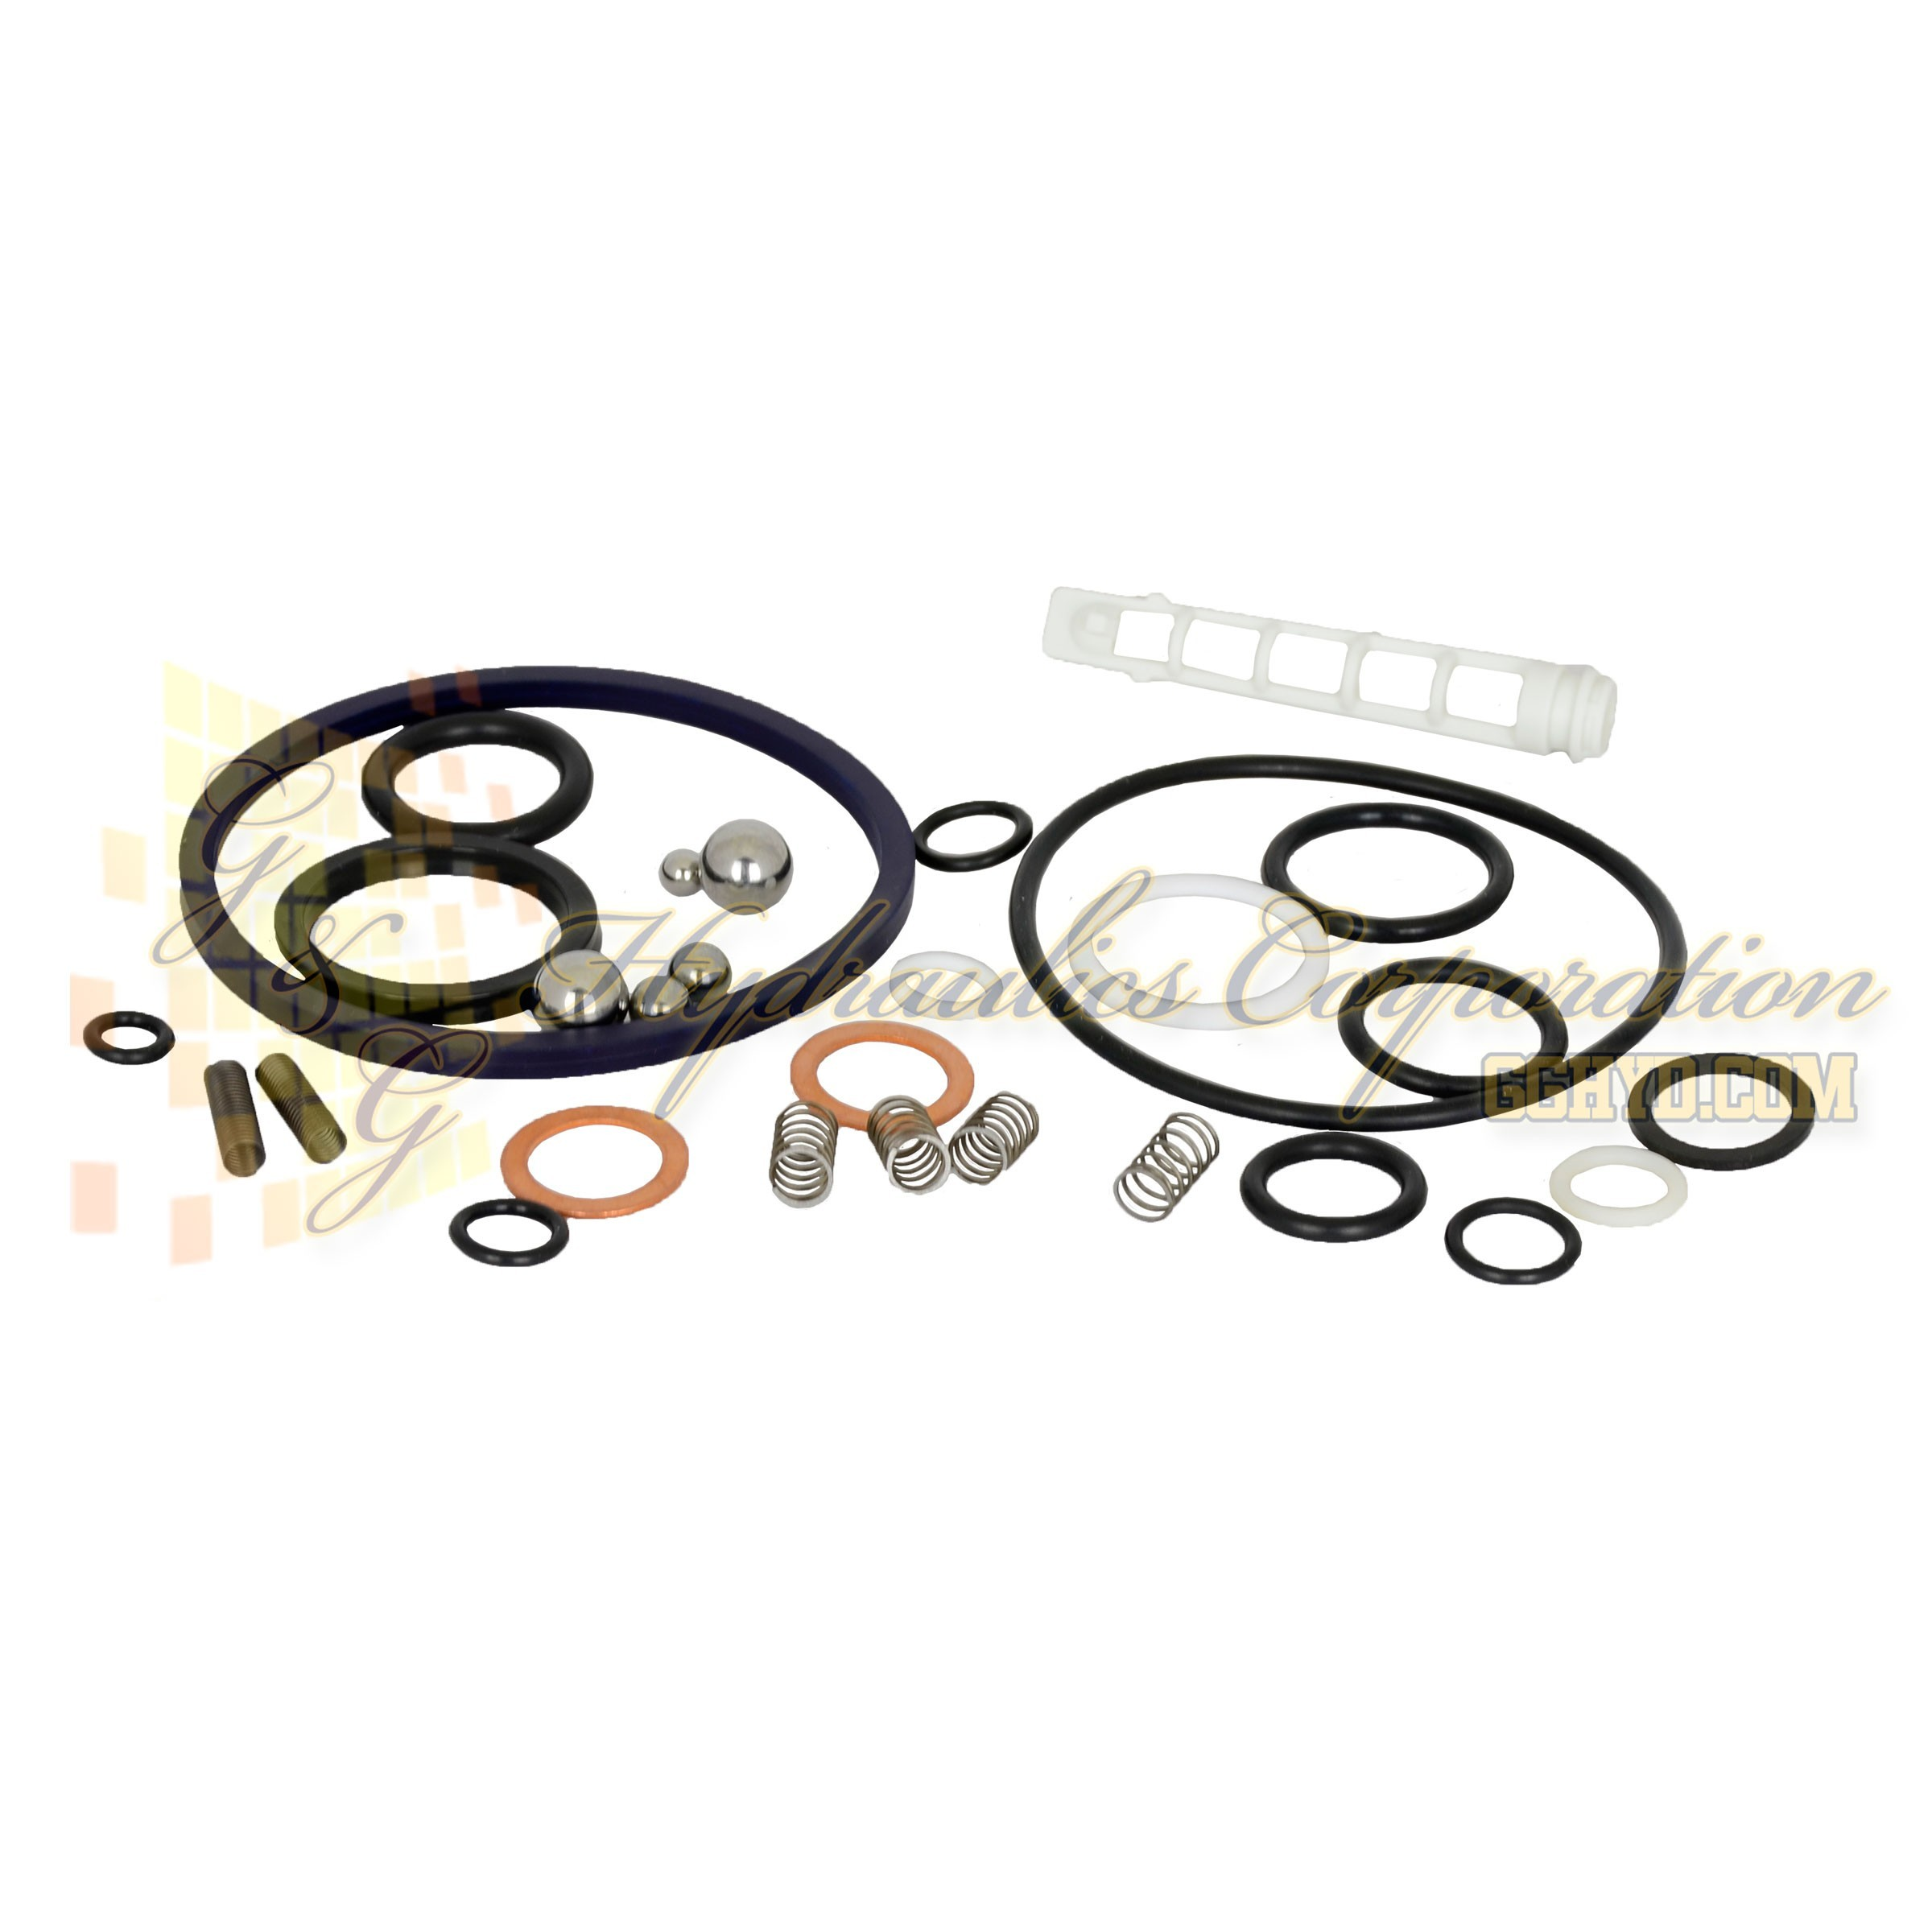 300840 SPX Power Team Seal Kits for Hydraulic PA6 Series Air Pump, Single-Acting UPC #662536296274